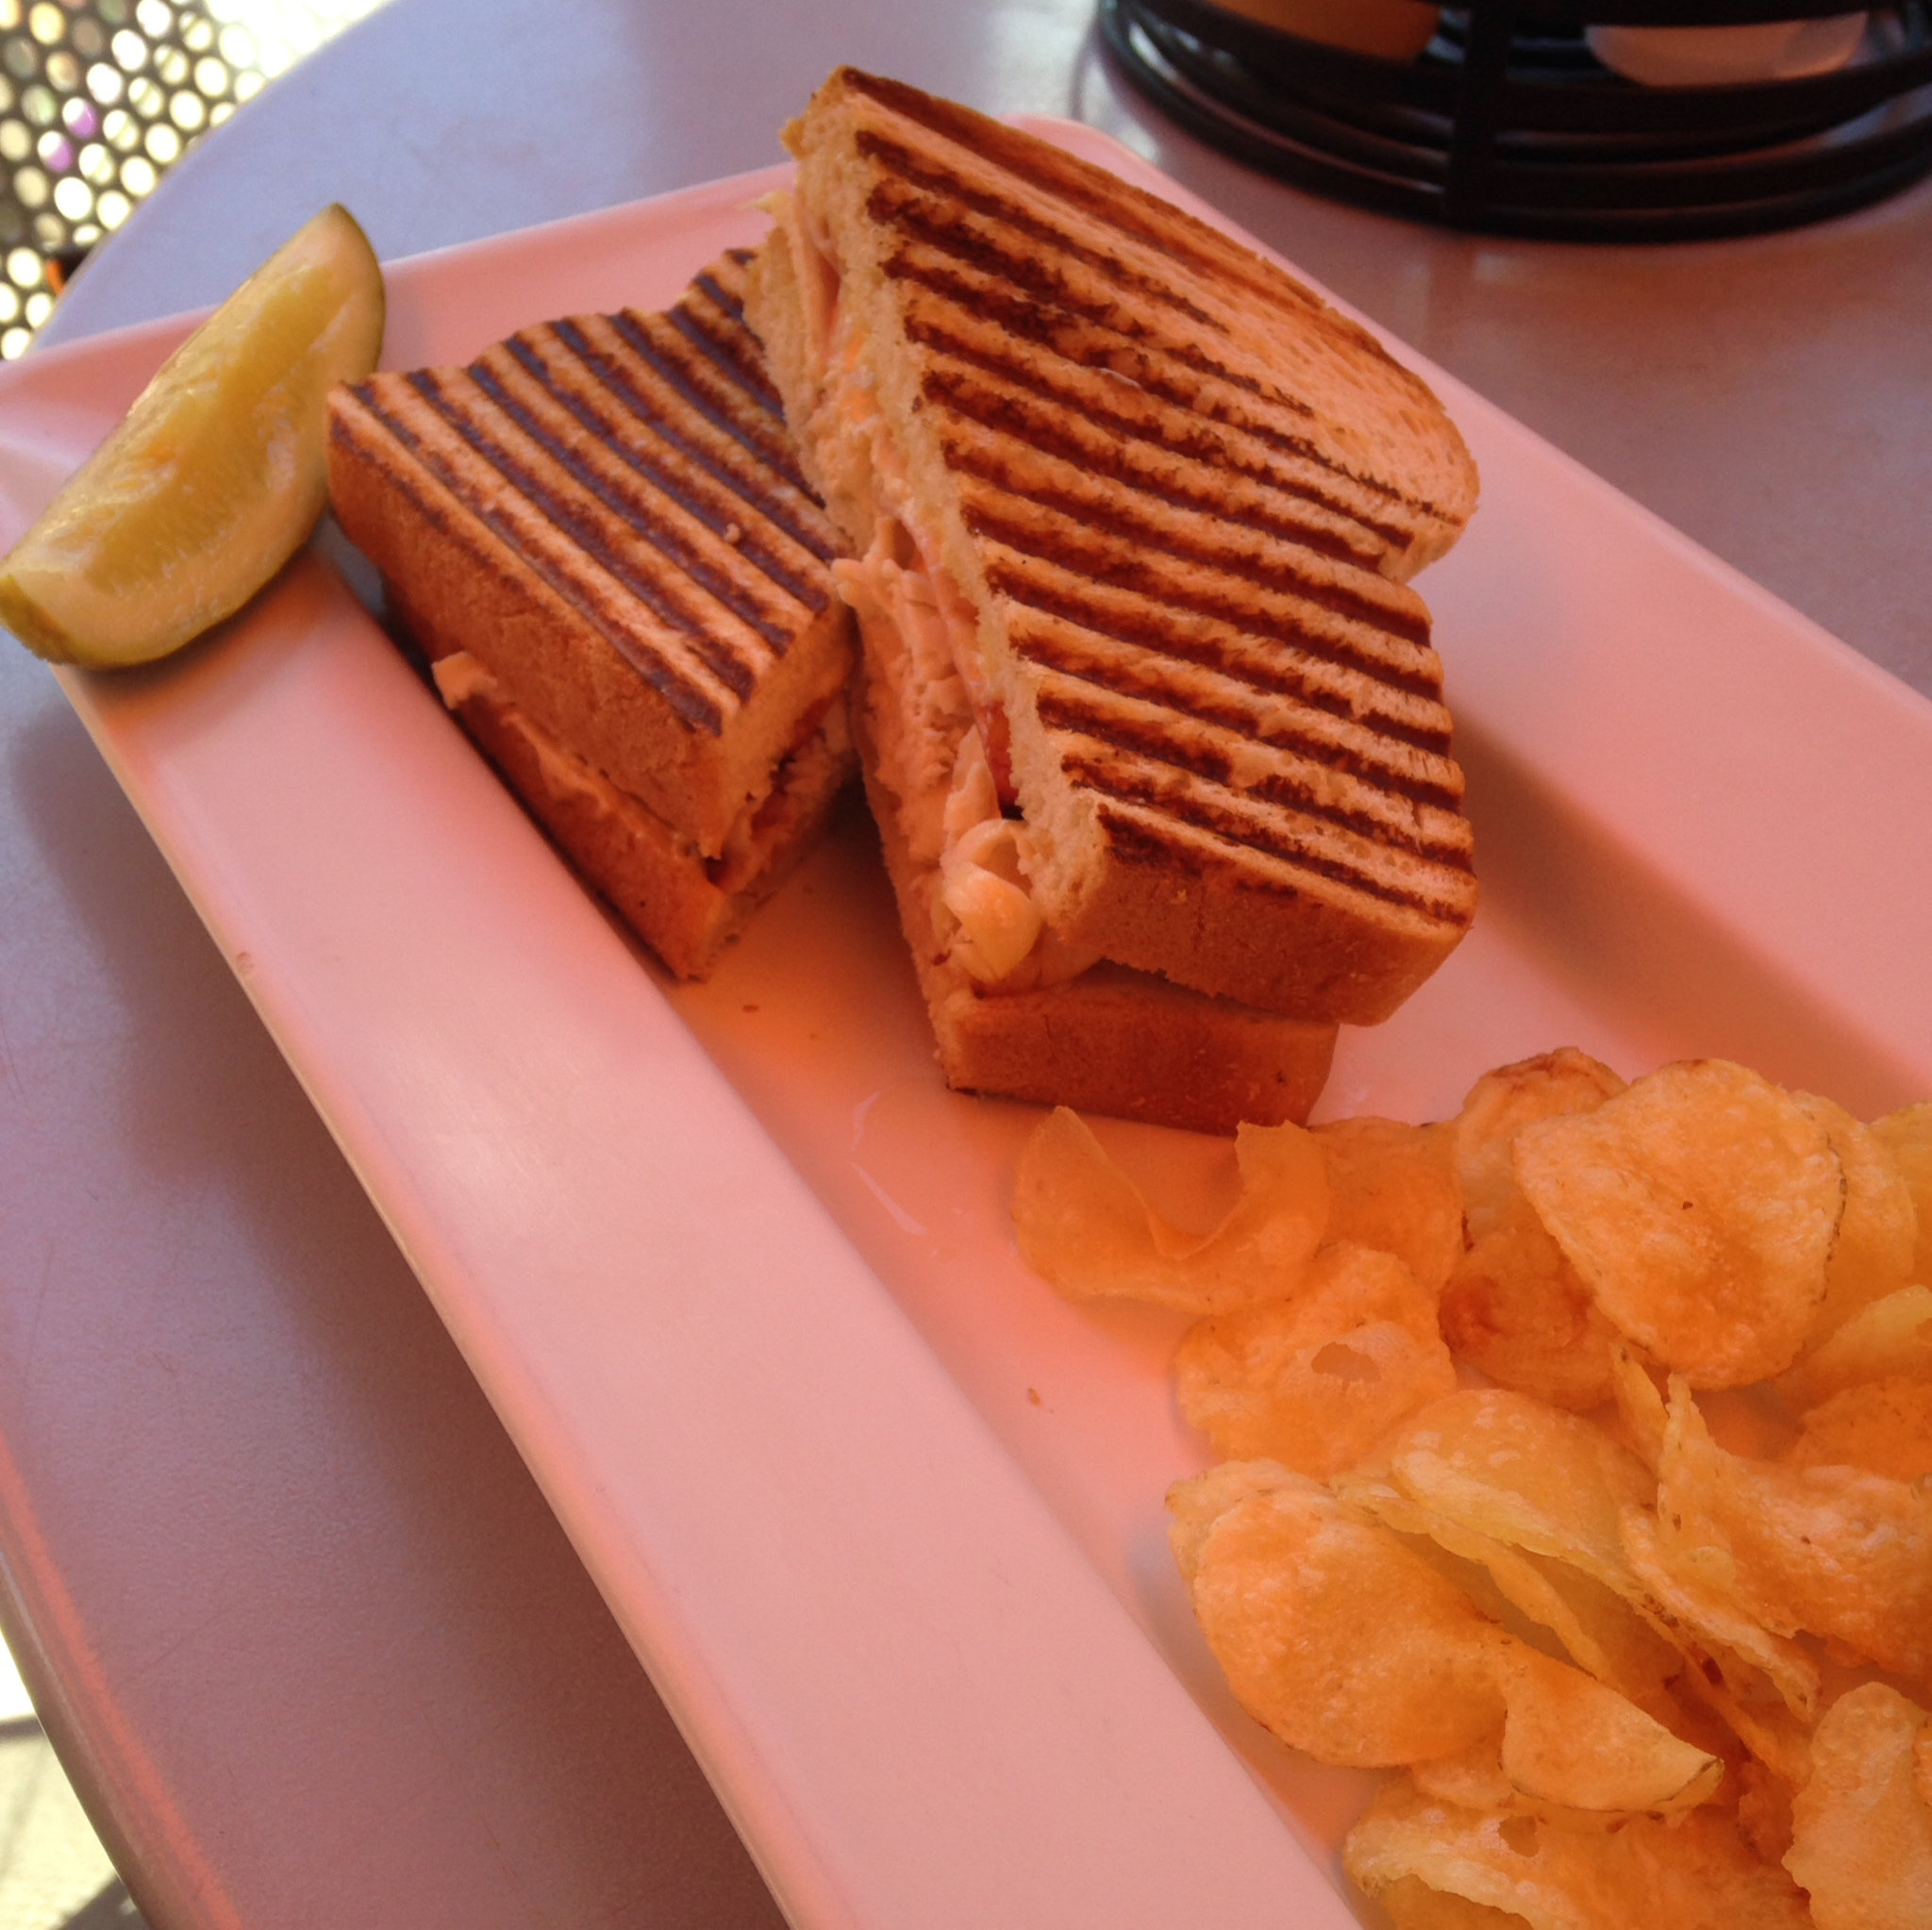 Lunch at Trio - Cordon Blue hot pressed panini with chicken, ham, swiss cheese and dijon aiolo.